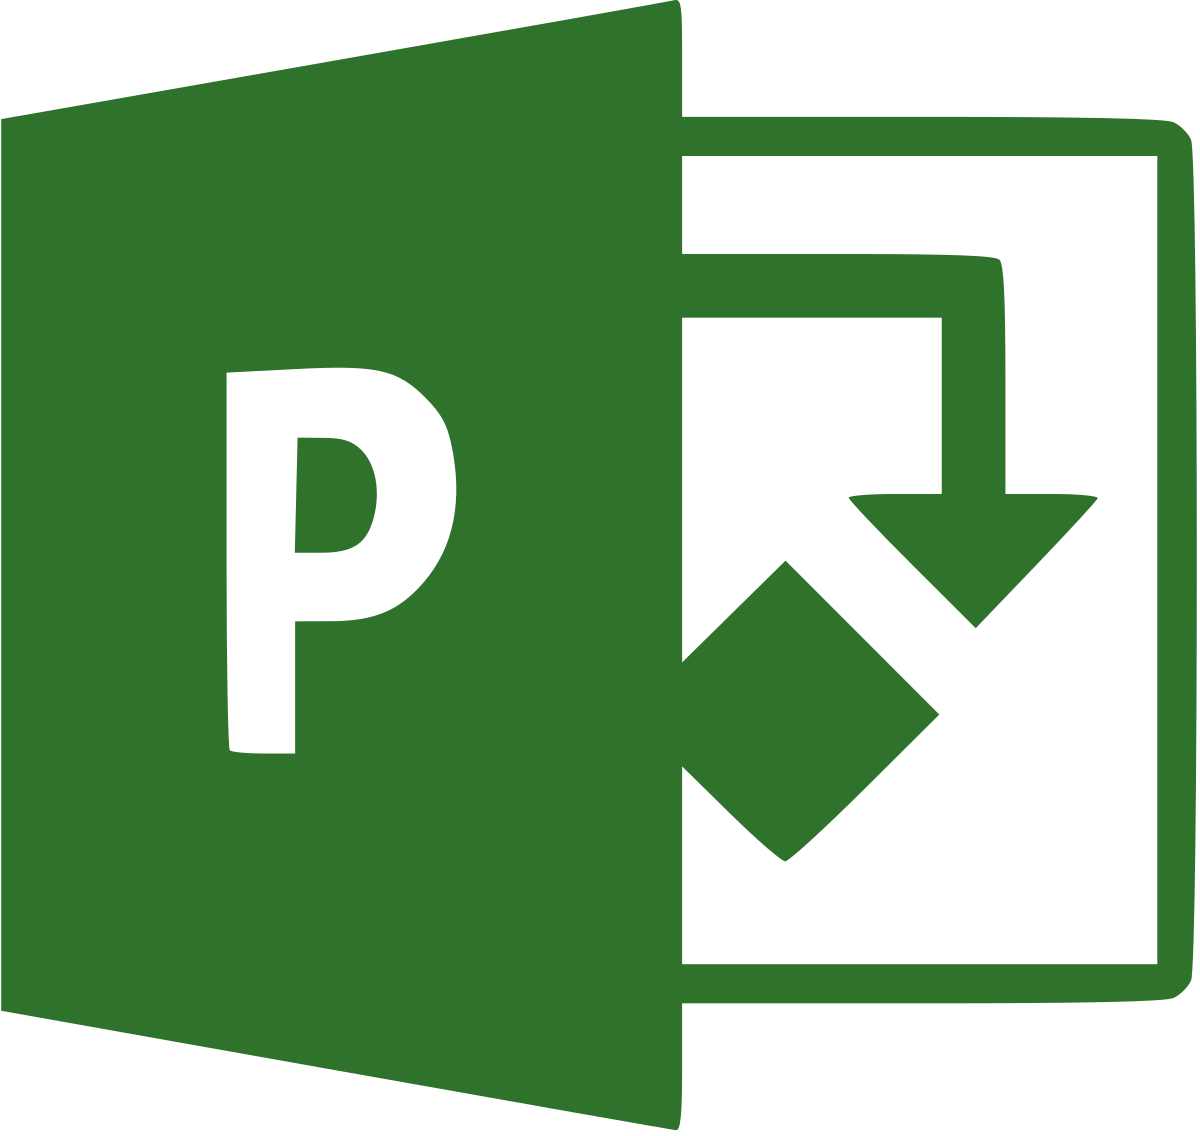 Microsoft Project - Project Management Tools & Software